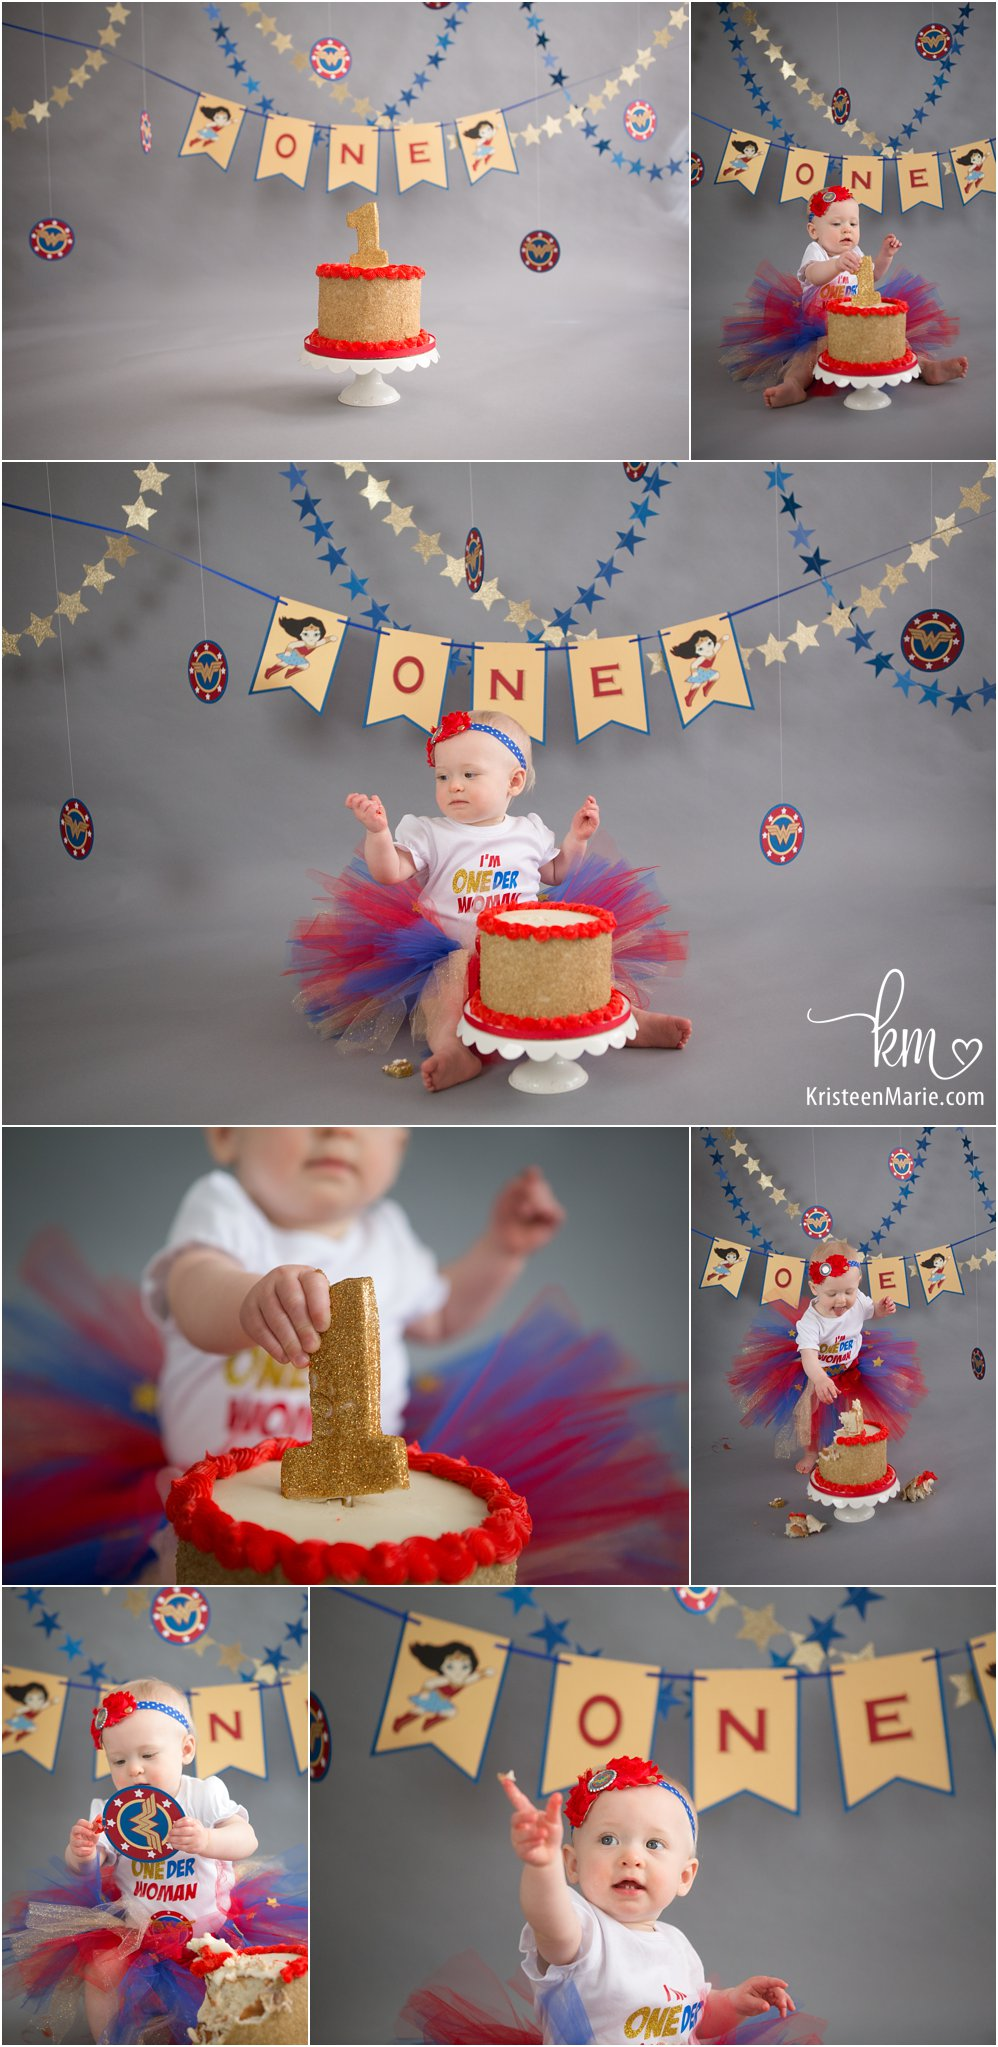 ONEder Woman 1st birthday cake smash photography - Wonder Woman